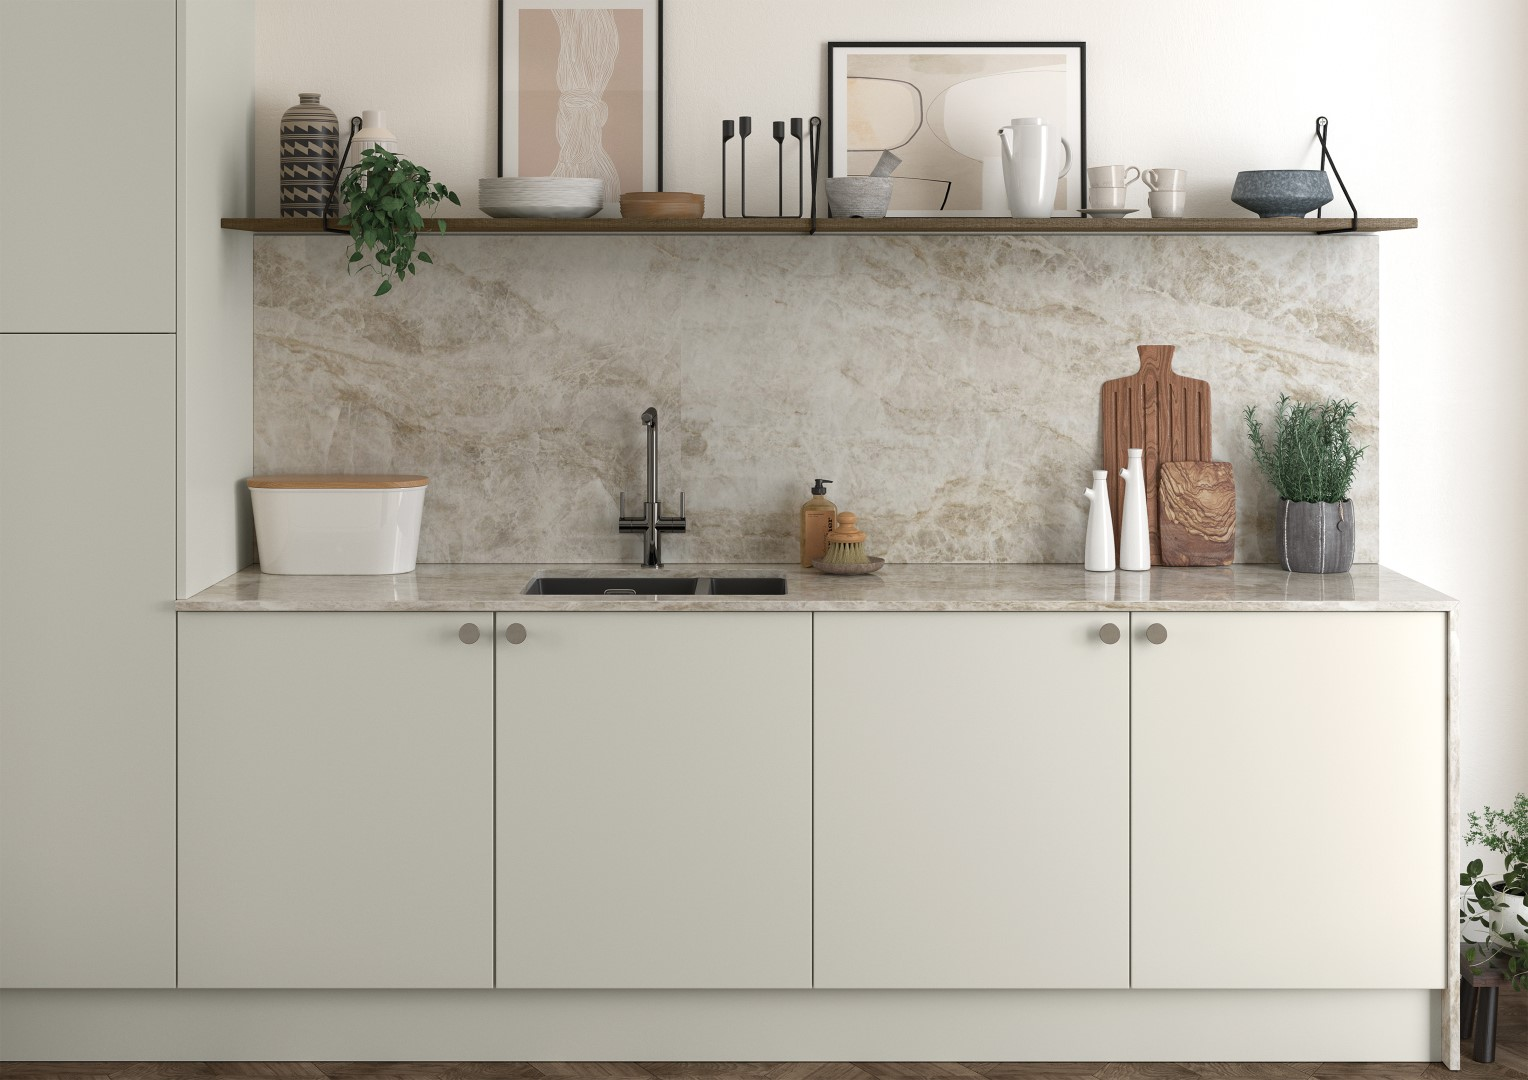 Zola Soft-Matte Porcelain and Rezana Stained Weathered Silver - Kitchen Design - Alan Kelly Kitchens - Waterford - 3